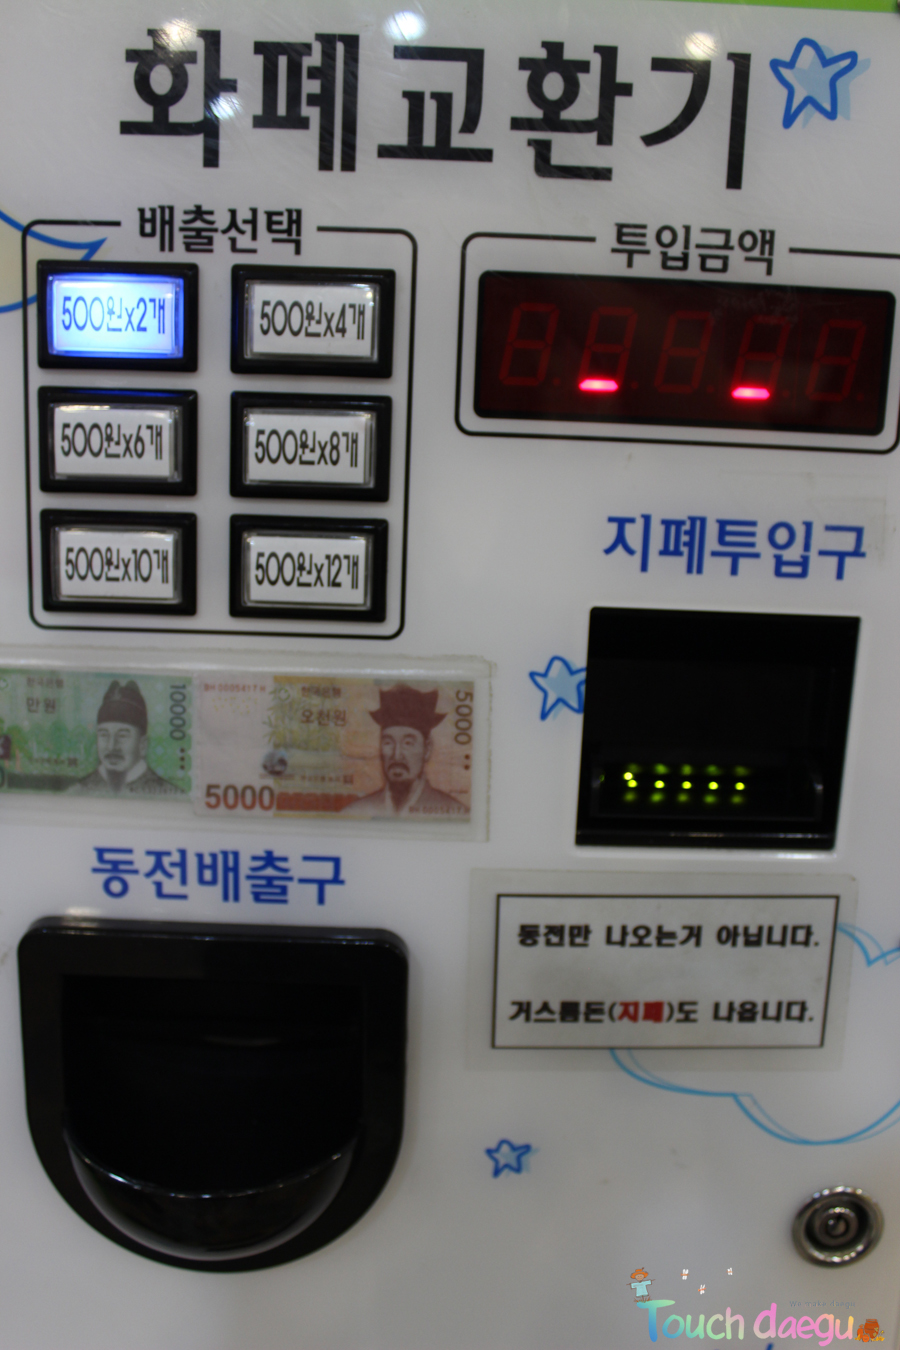 The coin changing machine